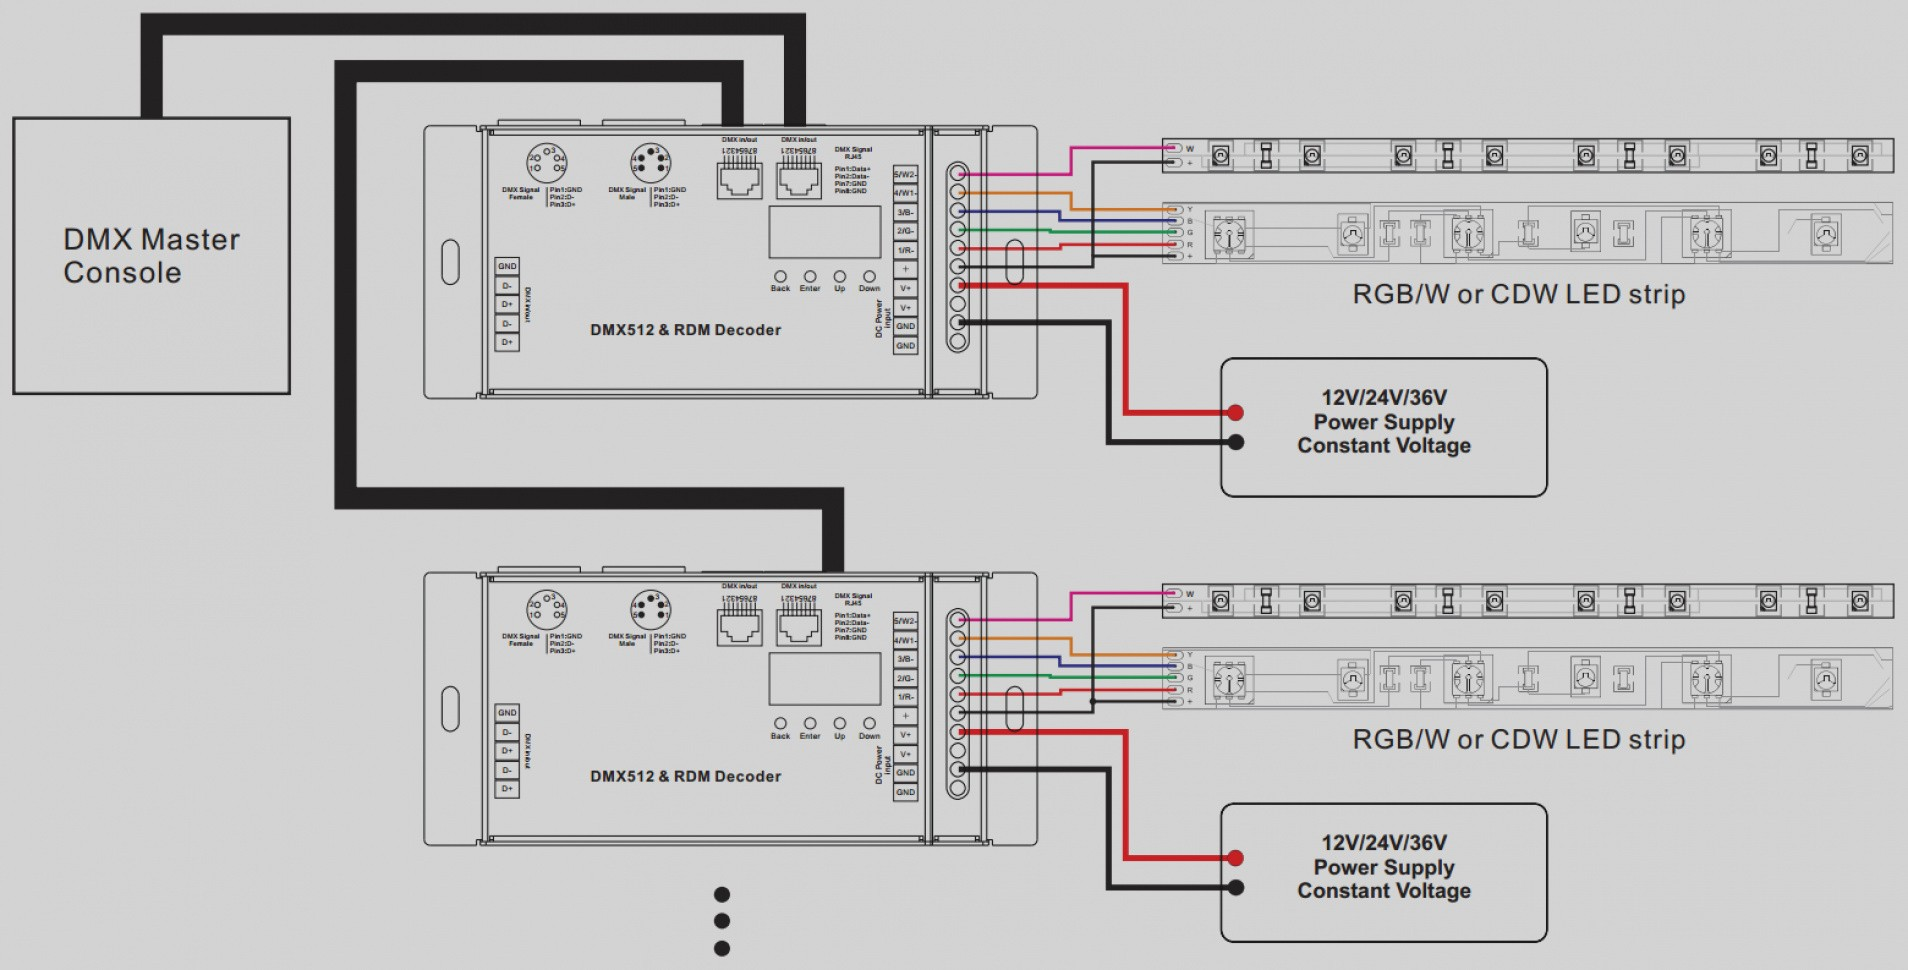 whelen justice light bar wiring diagram - fuse box lincoln mark lt -  fusebox.1997wir.jeanjaures37.fr  wiring diagram